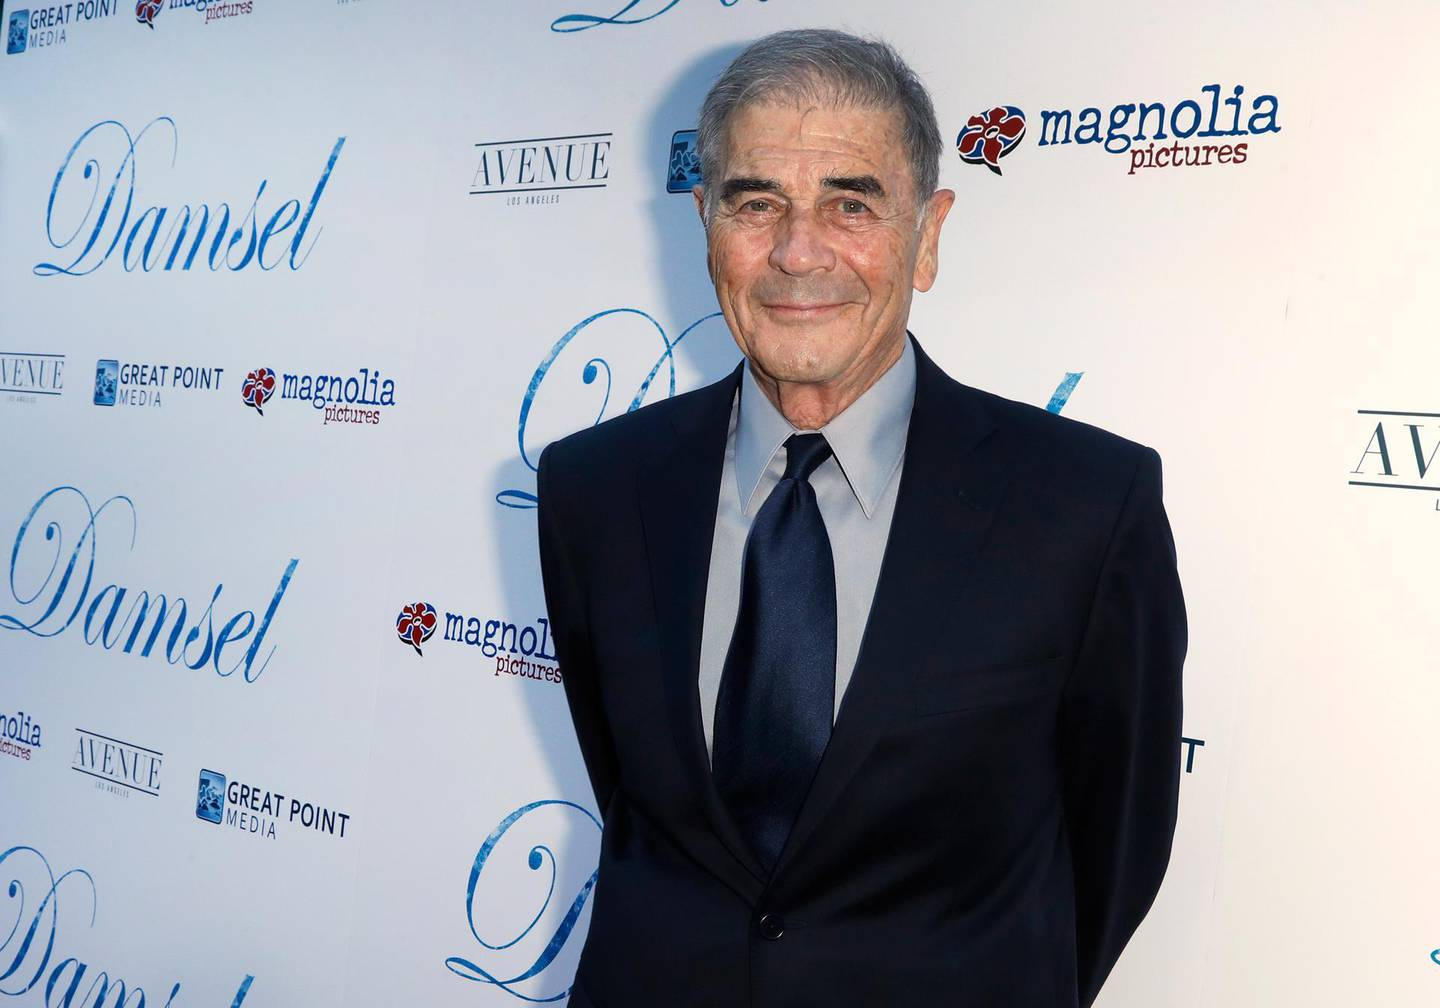 epa07914761 (FILE) - US actor and cast member Robert Forster arrives for the premiere of the film 'Damsel' at the ArcLight Theatre in Hollywood, California, USA, 13 June 2018 (reissued 12 October 2019). Oscar-nominated US actor Robert Forster died on 11 October 2019 at the age of 78, media reported on 12 October 2019.  EPA/PAUL BUCK *** Local Caption *** 54405702